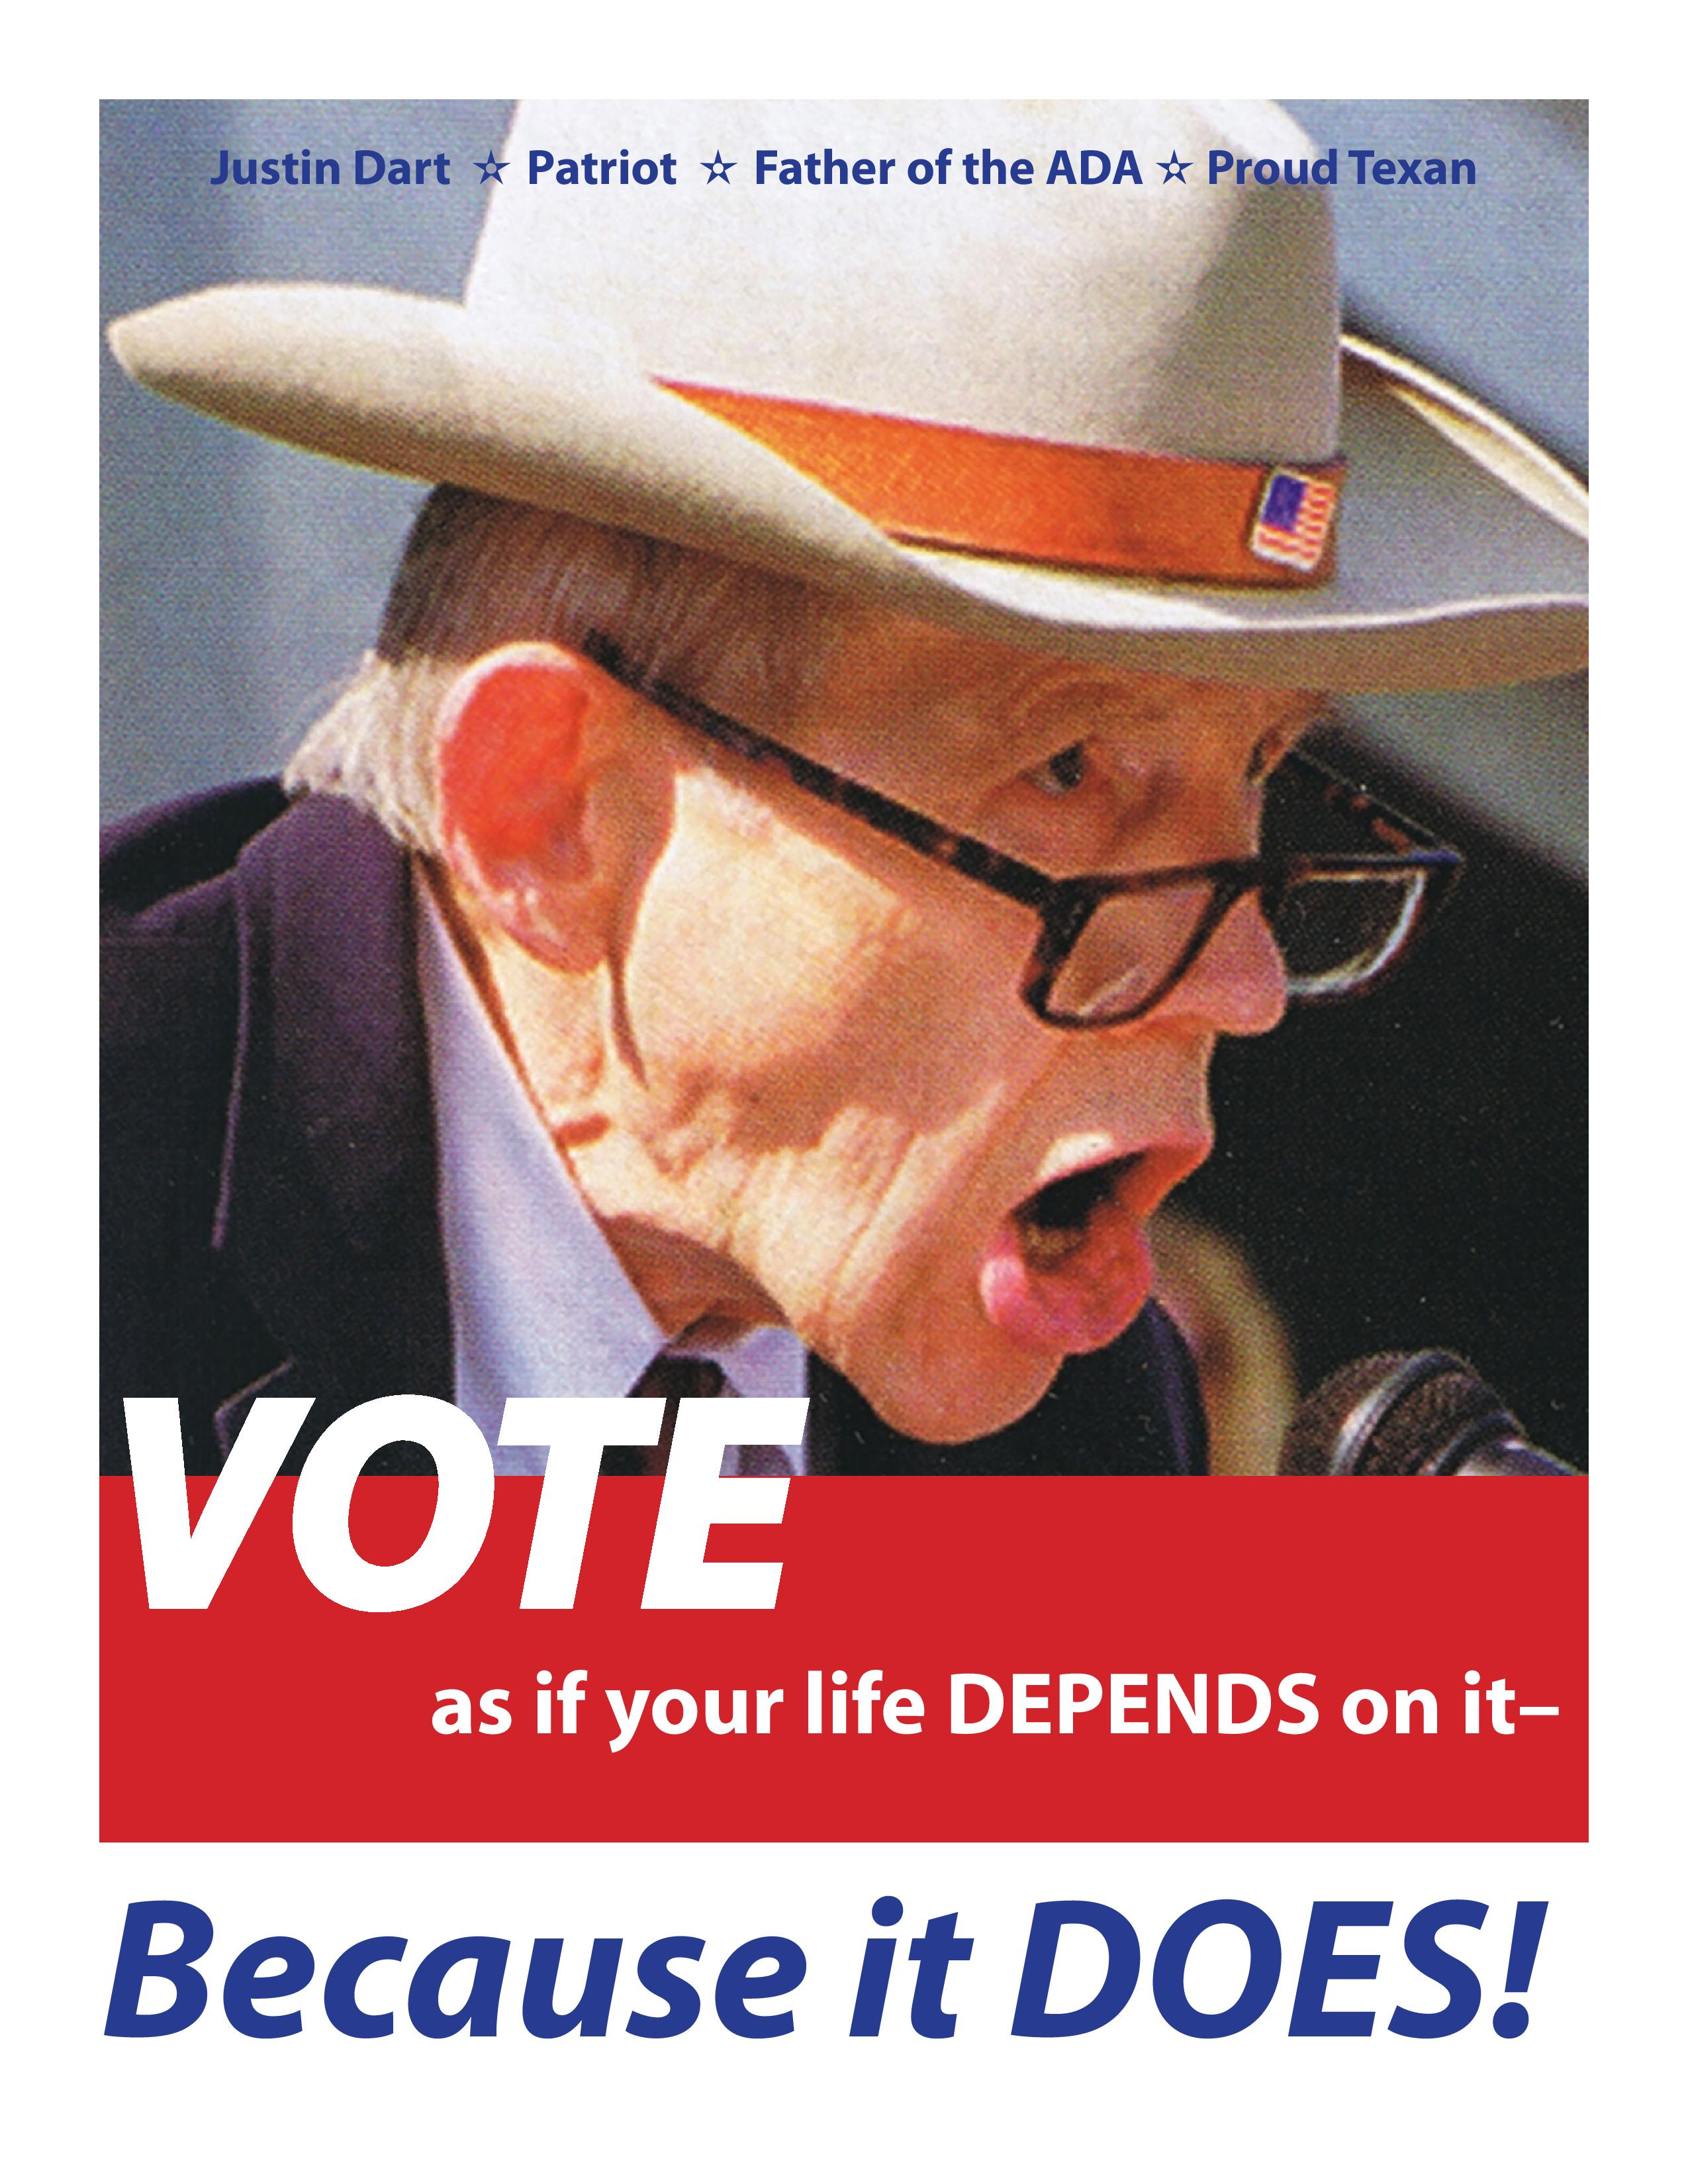 Justin Dart Poster, text: Vote as if your life depends in it, because it does!